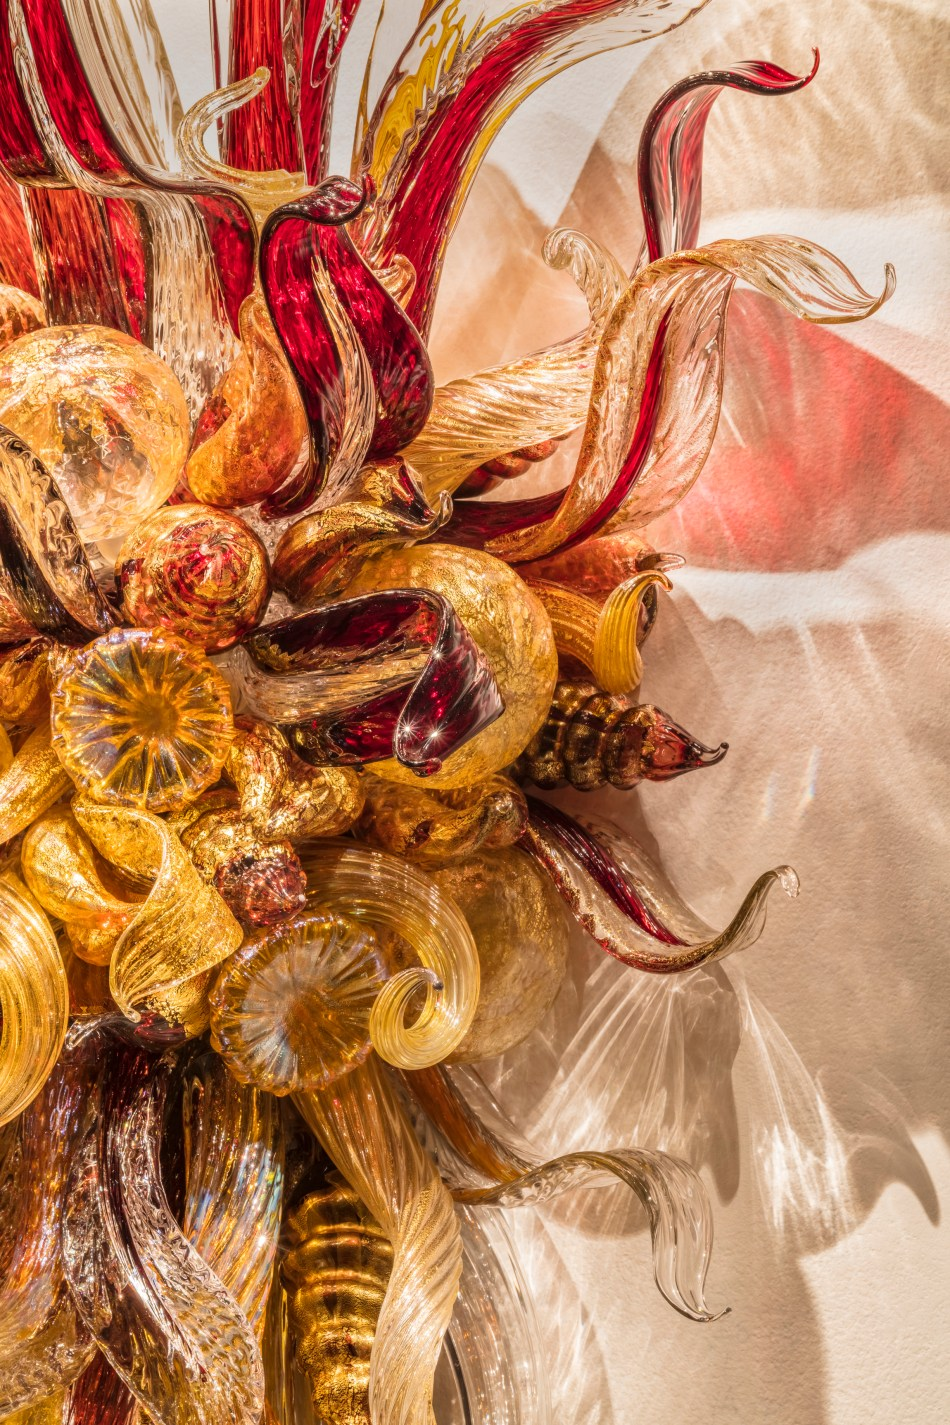 Cranberry and Sienna Sconce (detail) 紅莓與赭色壁燈(局部), 2018, 191 x 122 x 61 cm © Chihuly Studio